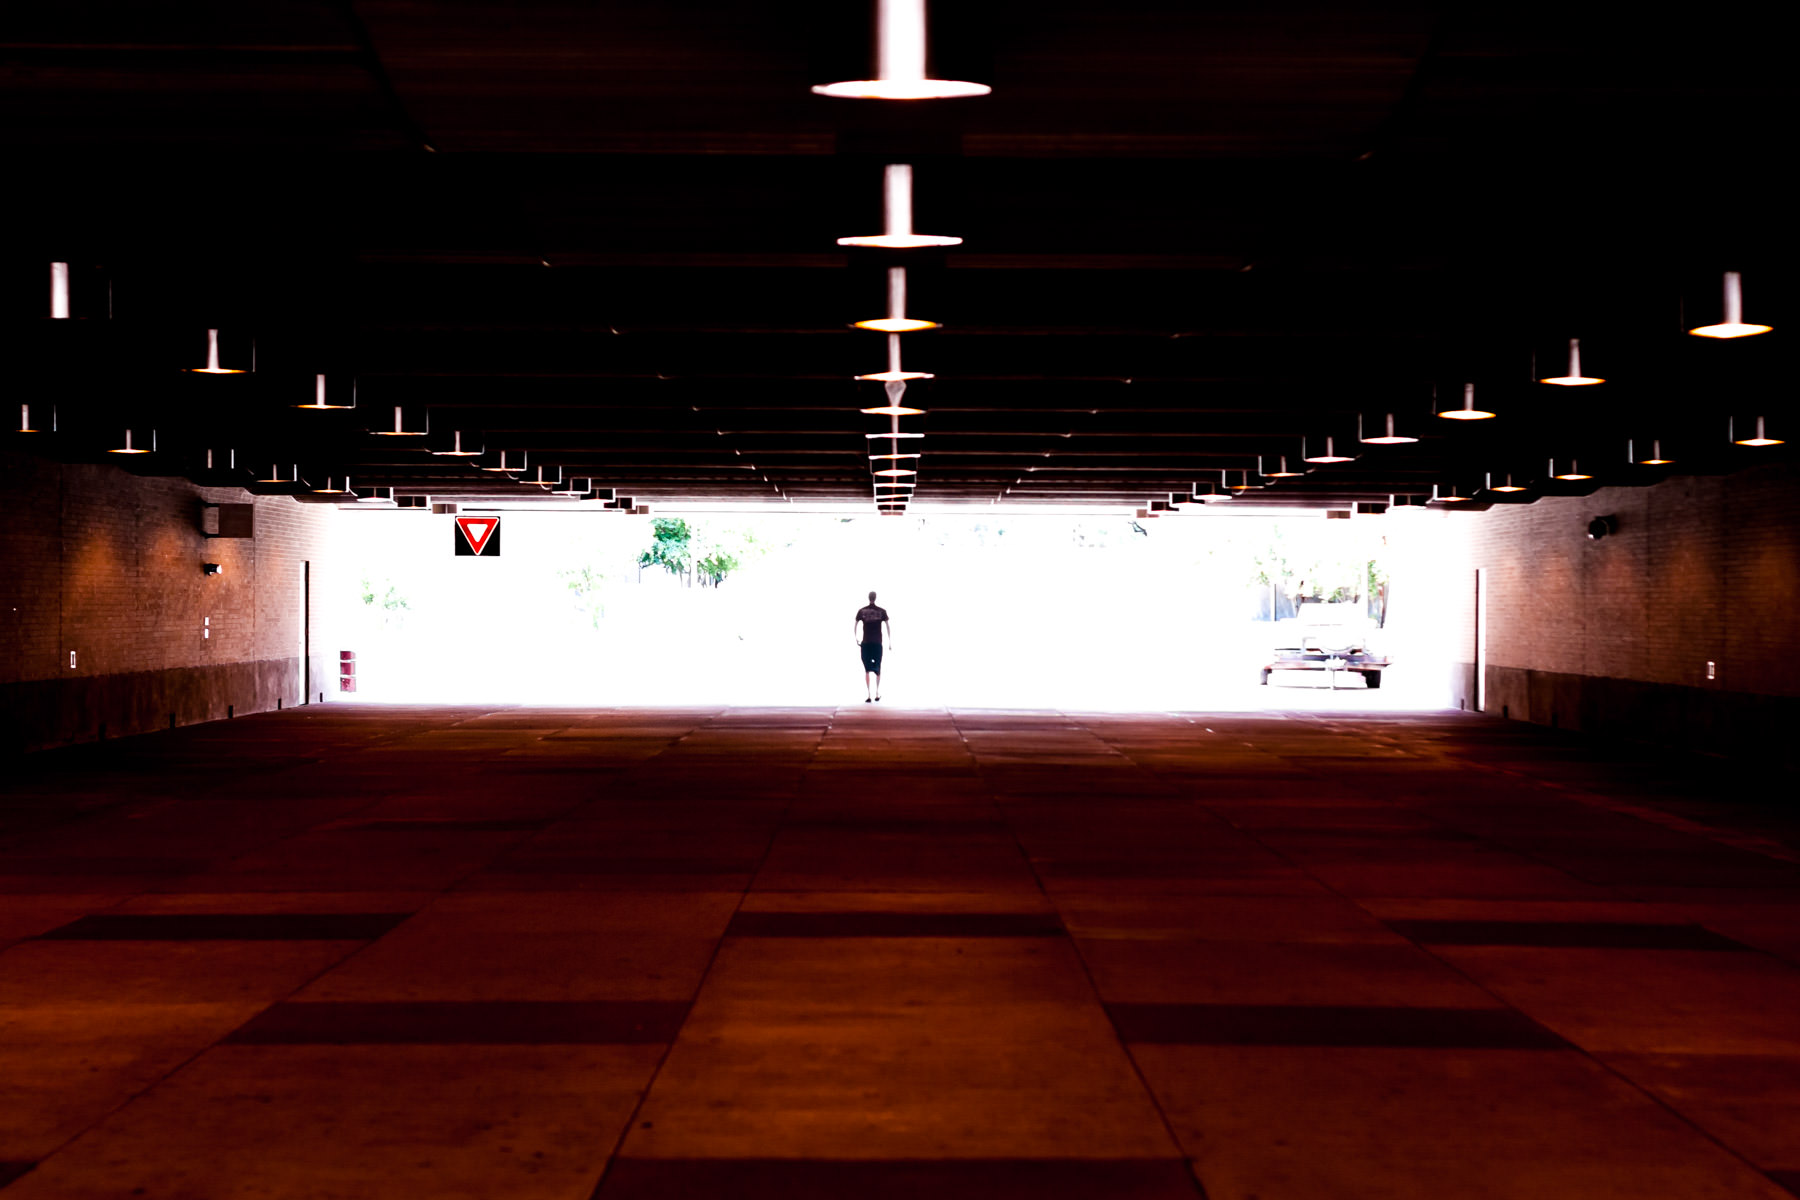 A lone figure traverses the tunnel under Wellborn Road from Texas A&M University's Main Campus to its West Campus.